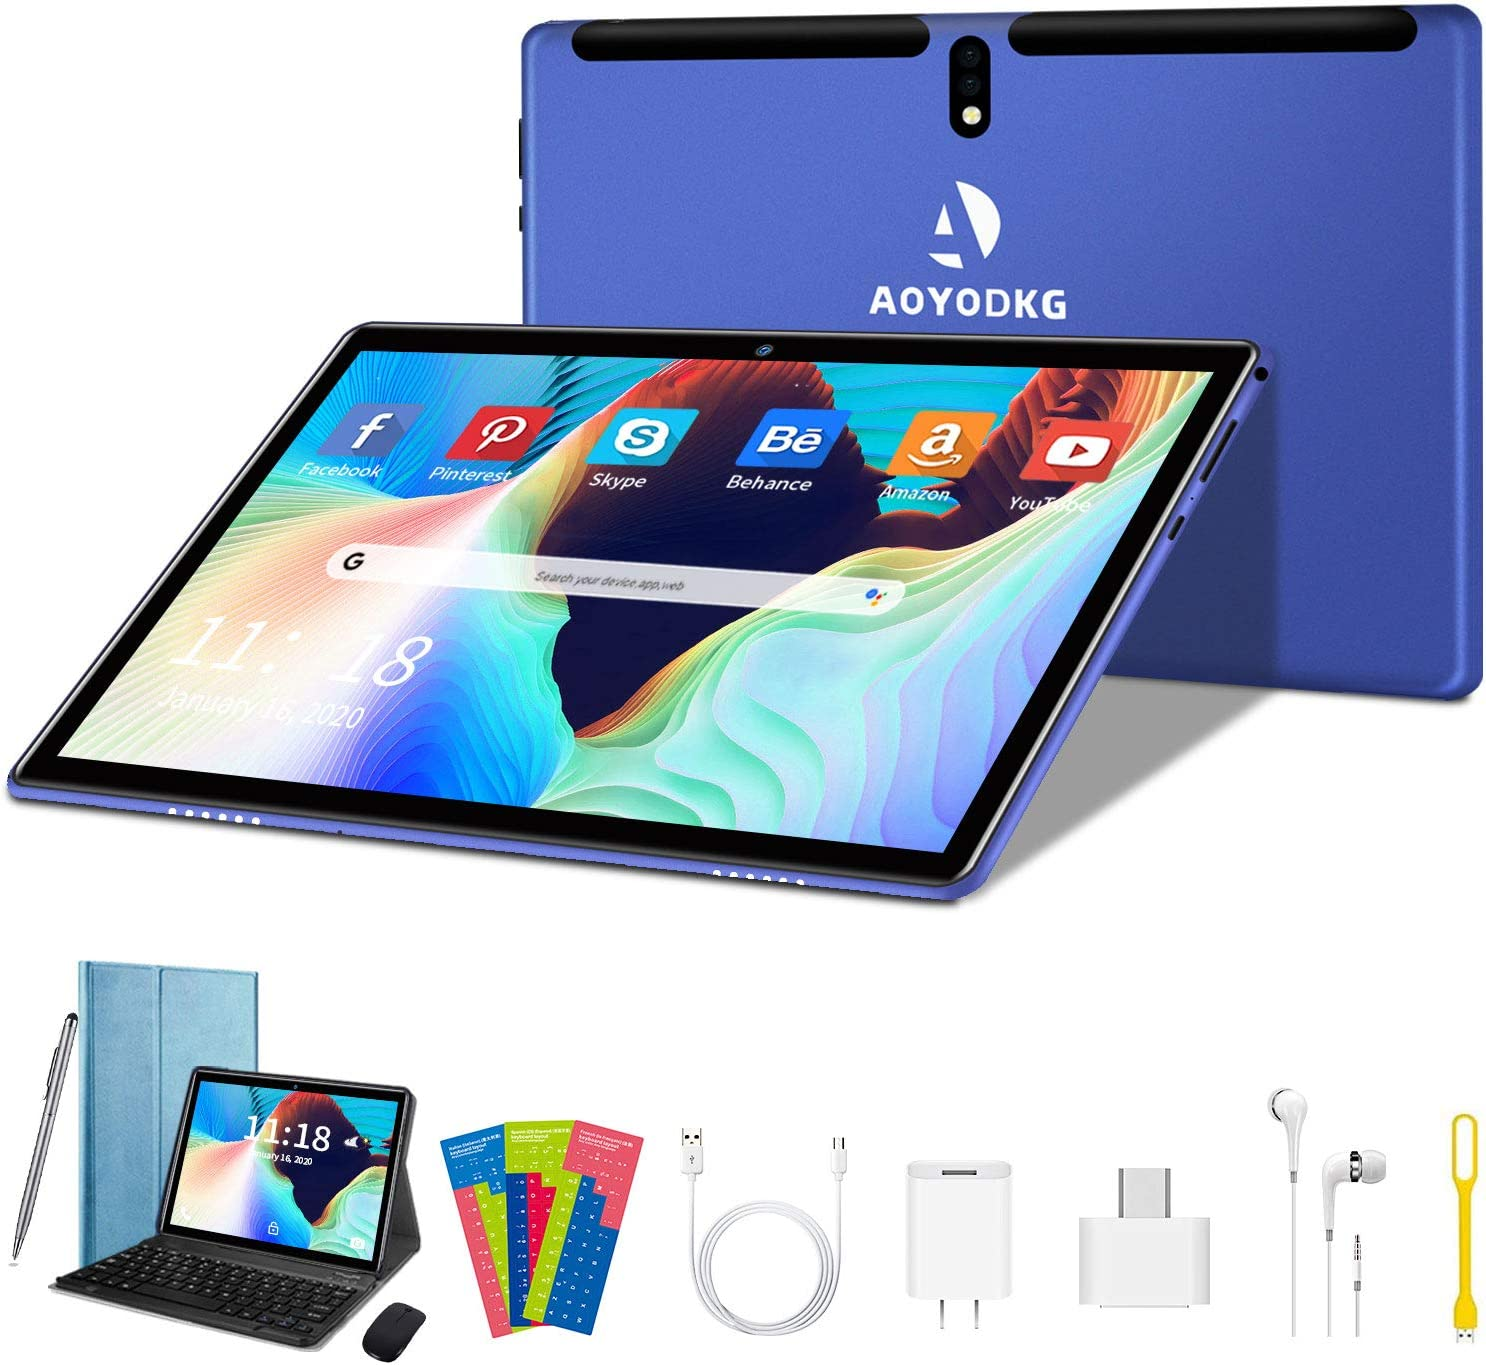 Tablet 2 in 1 Tablet PC MTK6580 Quad Core 1.3Ghz Processor, Android 9.0 (GO Editiom) Tablet, 10.1 inch HD (1280 x 800) IPS Display with Keyboard Case,Type-C,BT4.2,WiFi,64GB Storage- (Blue)